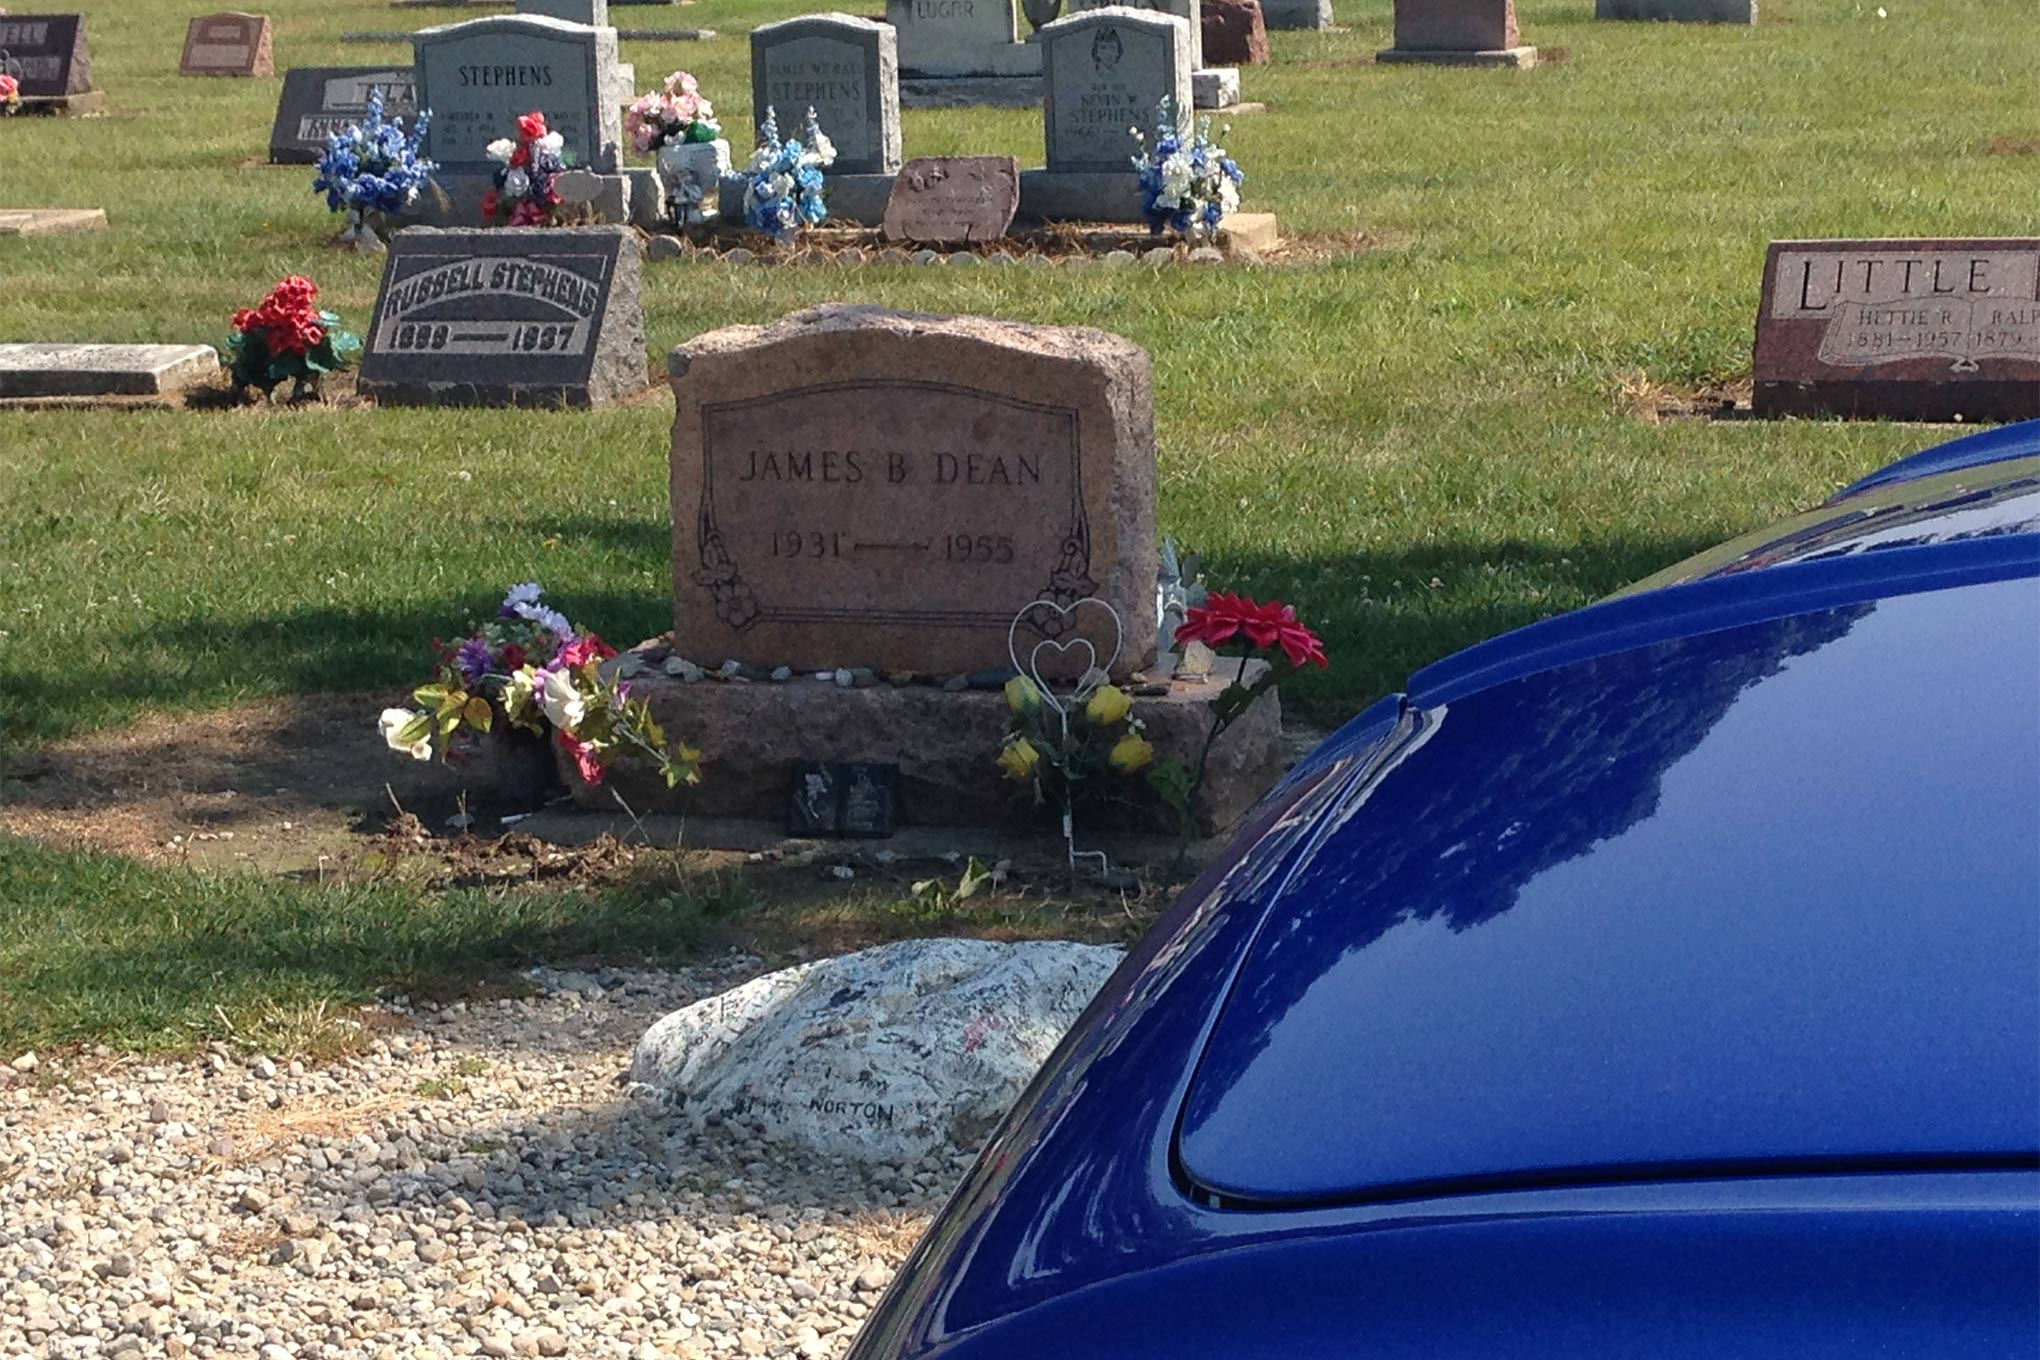 Some of the tour participants made a stop in Marion, IN, which is James Dean's hometown. We visited his old high school, the James Dean Museum, and his gravesite just outside of town.